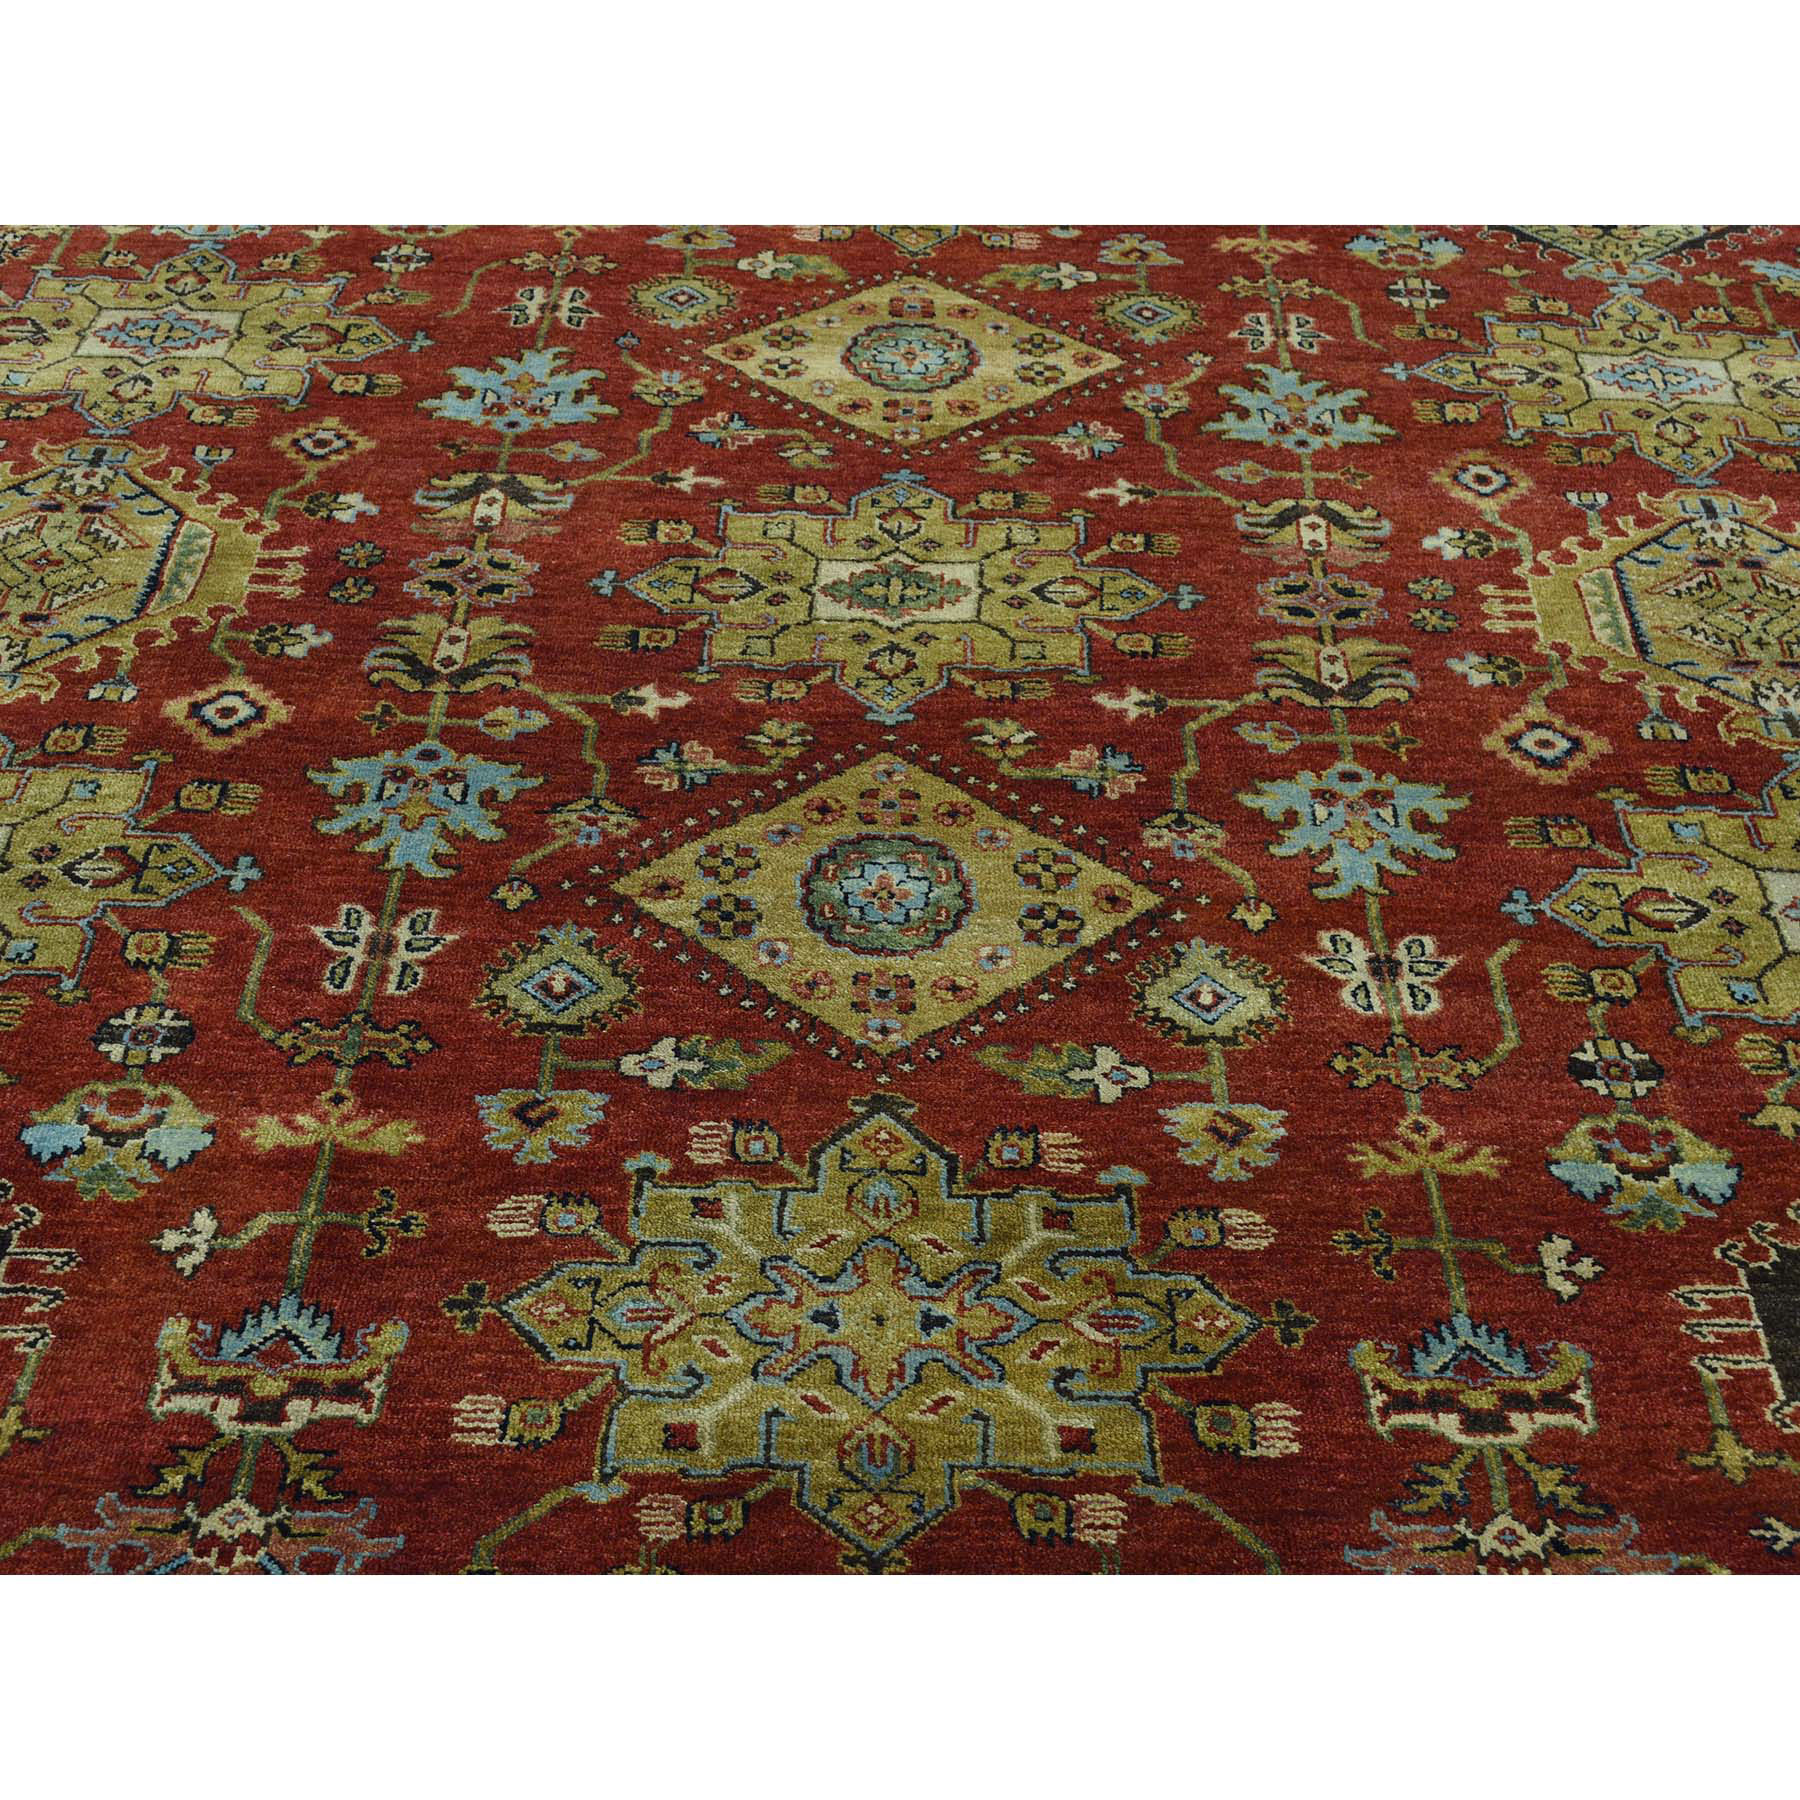 9-10--x9-10-- Hand-Knotted Round Karajeh Pure Wool Oriental Rug